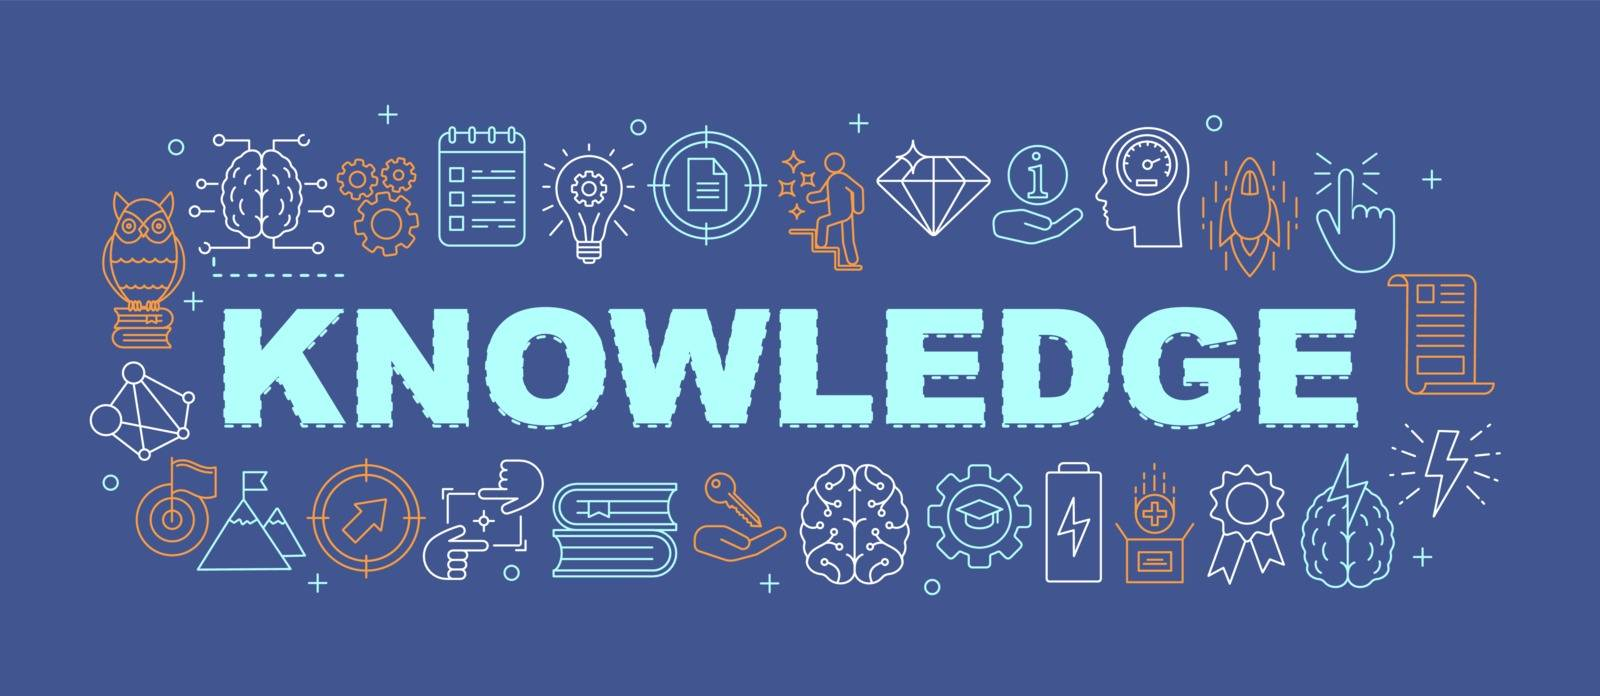 Knowledge word concepts banner. Learning process. Studying. Presentation, website. Brainstorming. Idea generation. Isolated lettering typography idea with linear icons. Vector outline illustration